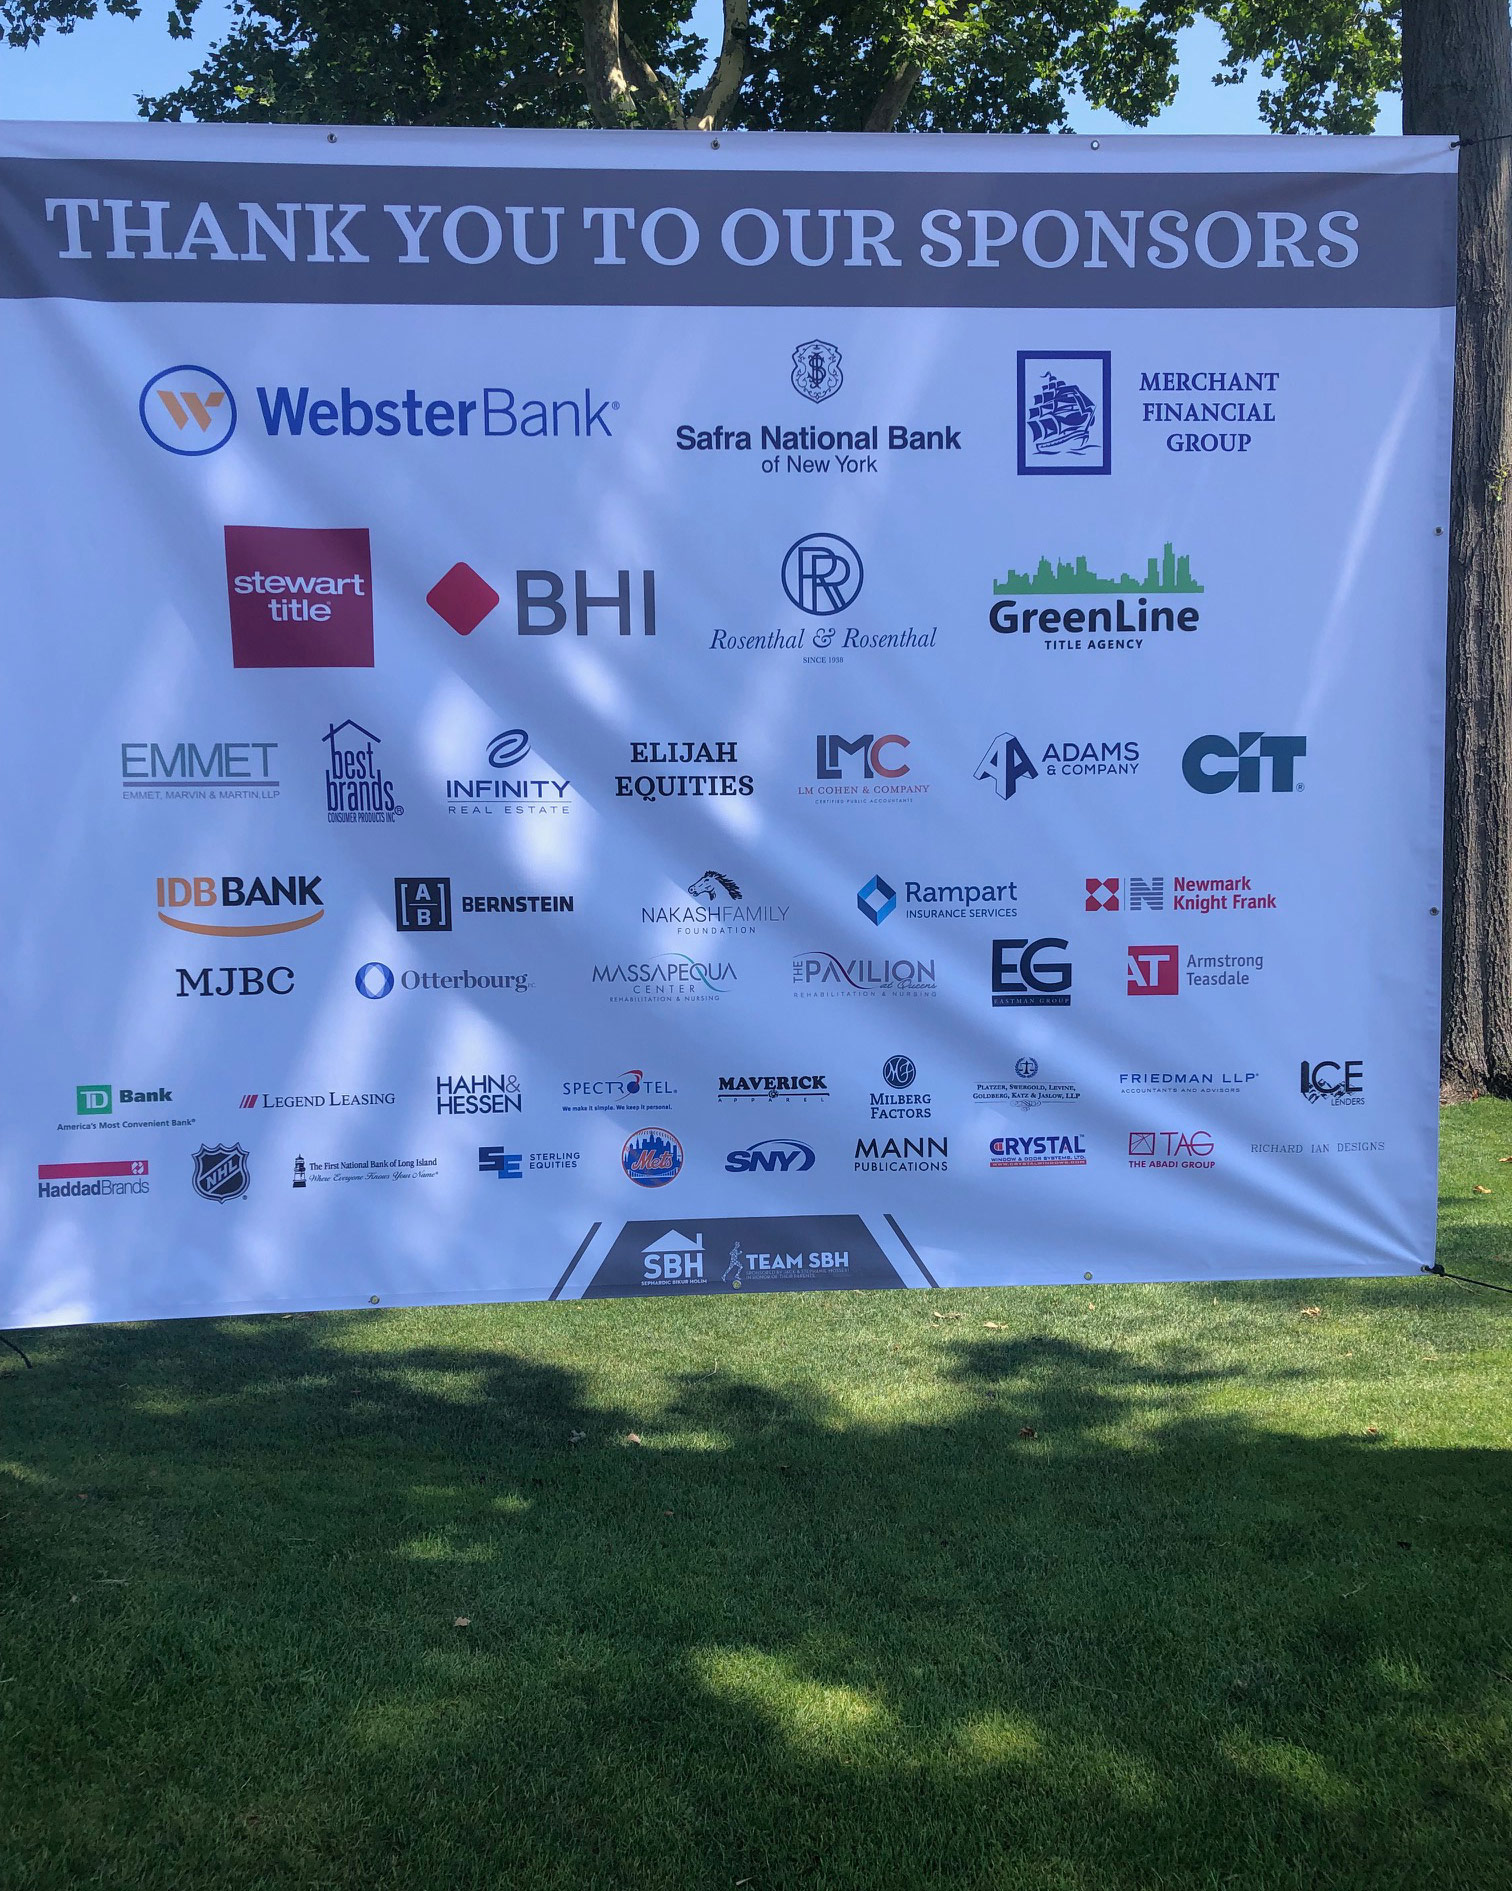 Thank You to our Sponsors Banner